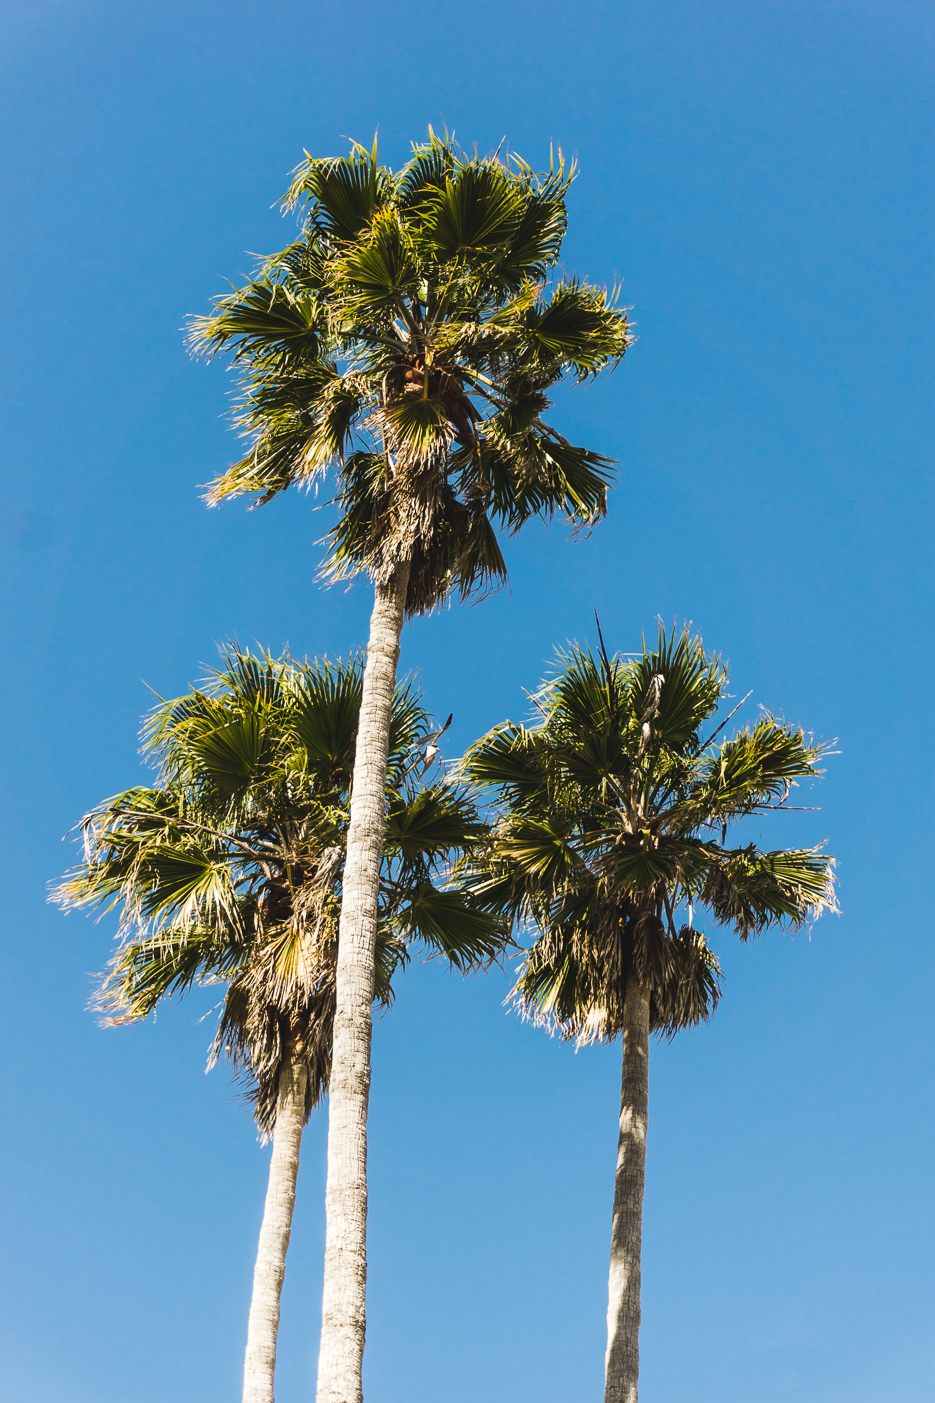 Santa Cruz Palm trees